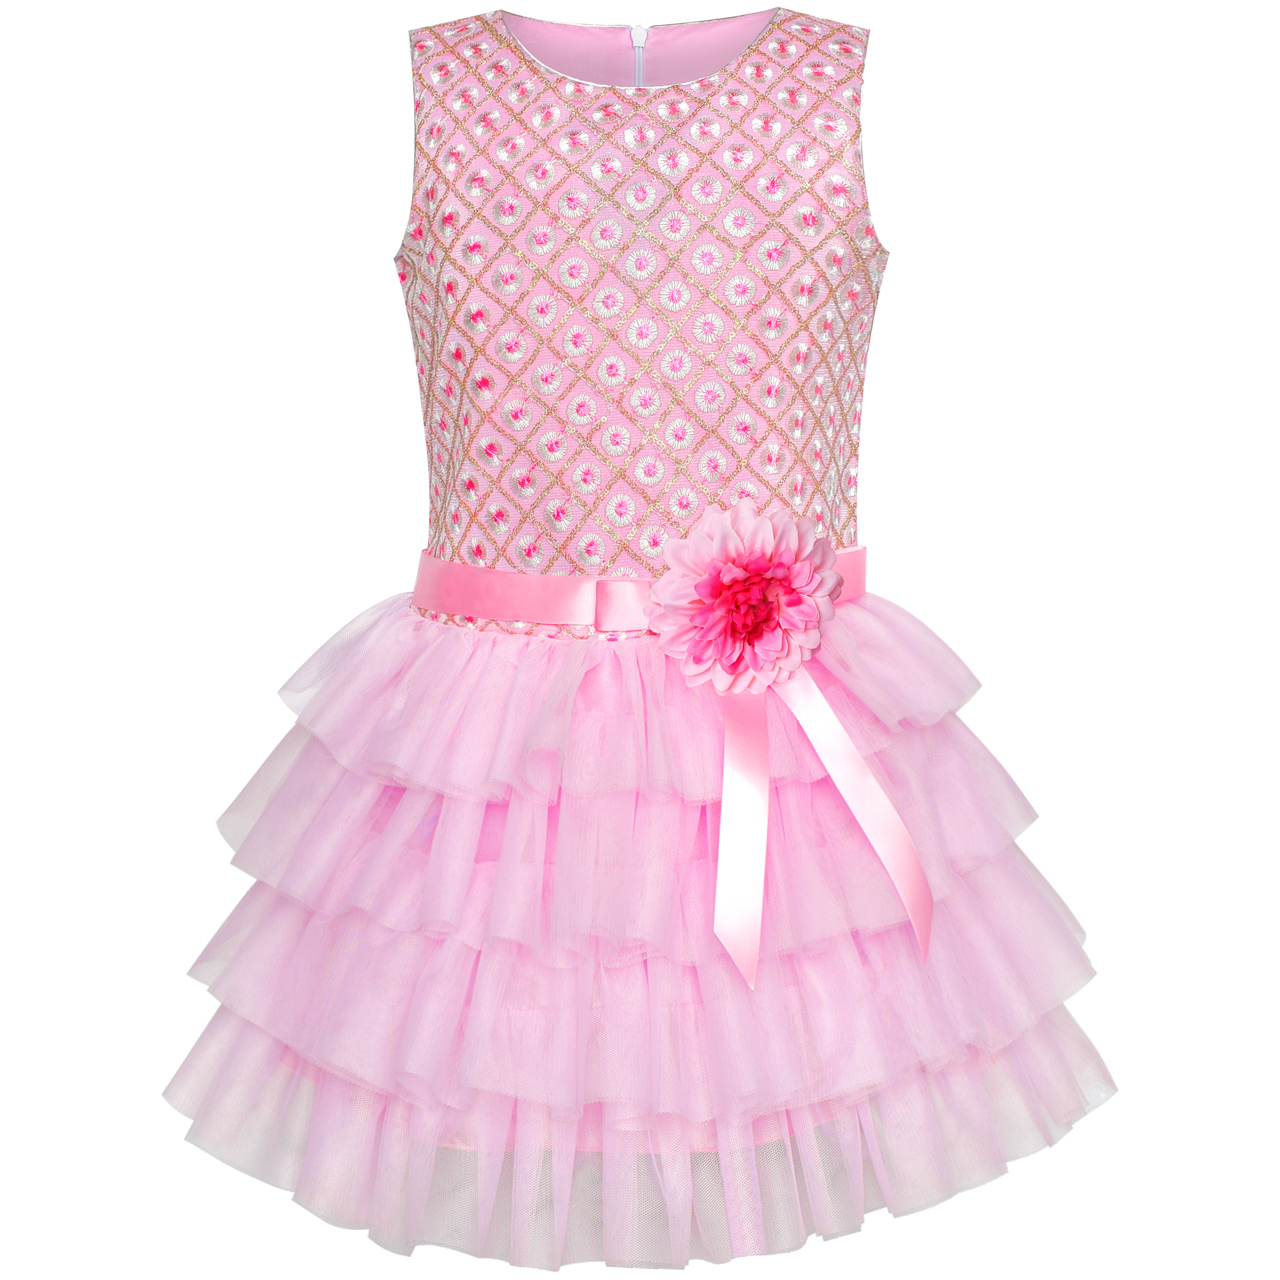 Girls Dress Ruffle Pink Flower Birthday Party 2019 Summer Princess Wedding Dresses Children Clothes Pageant Sundress brwcf flower girls dress for party wedding birthday 2017 summer princess dresses leopard printing children clothes 2 8years